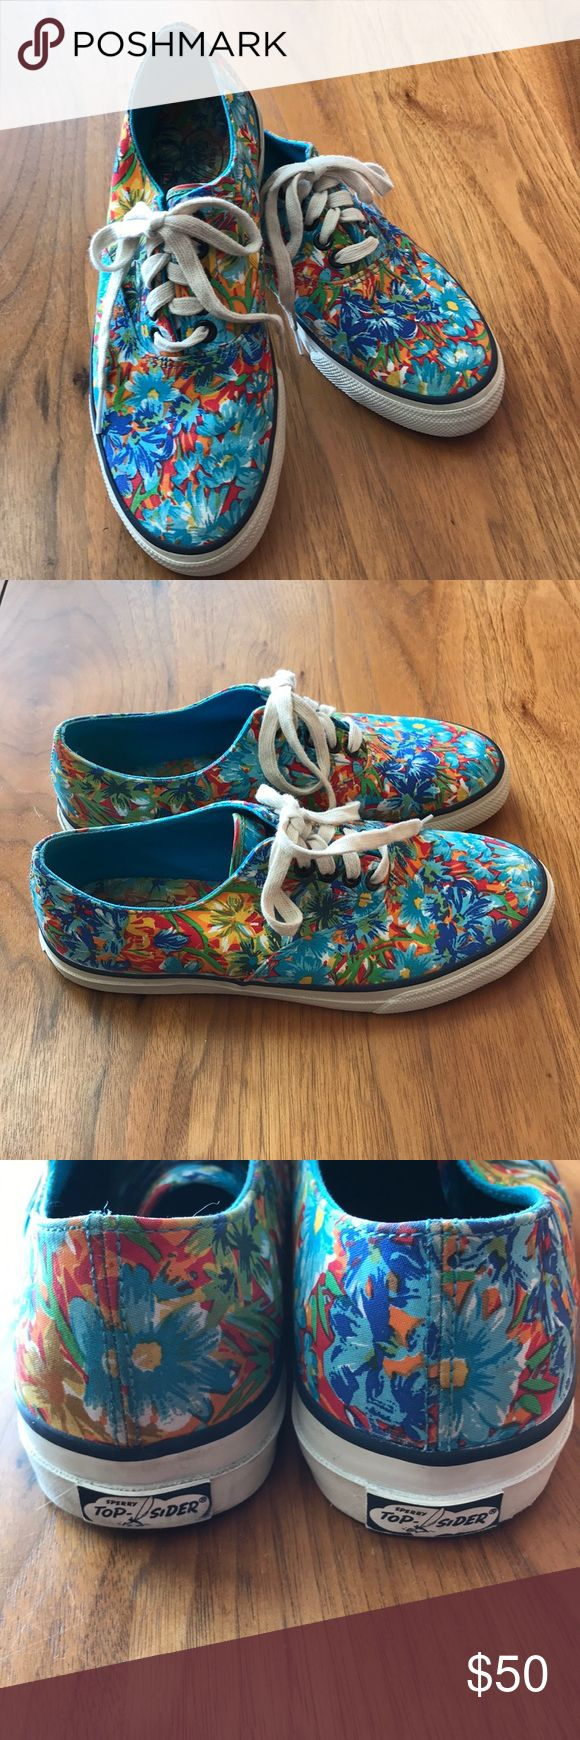 Sperry Top Siders floral sneakers Great condition for these retro style Sperry sneakers These are men's sneakers but they fit my feet just fine. Please research fit on women buying men's sneakers as these could possibly fit a women's size 7.5-8. Great shoe for spring/summer wearing. No trades/No ️️ Offers welcome  Quick shipping Sperry Top-Sider Shoes Sneakers